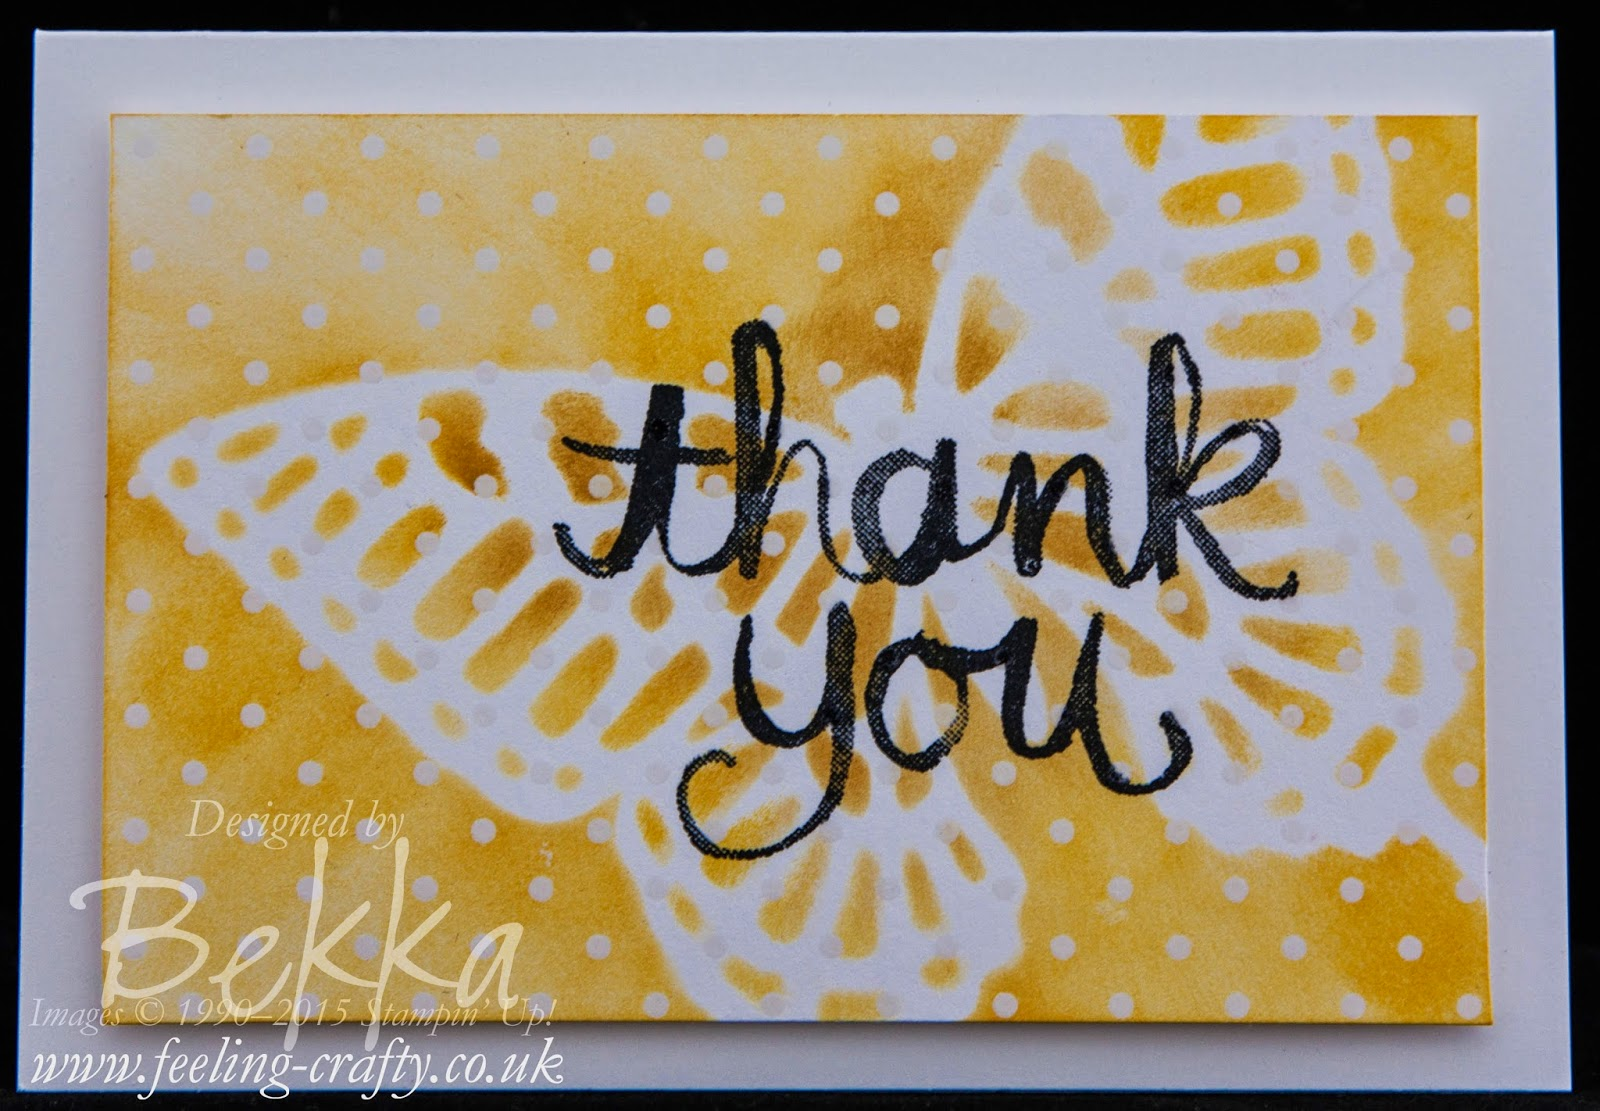 Irresistibly Yours Butterfly Stencil Note Cards - check out this blog for lots of great ideas